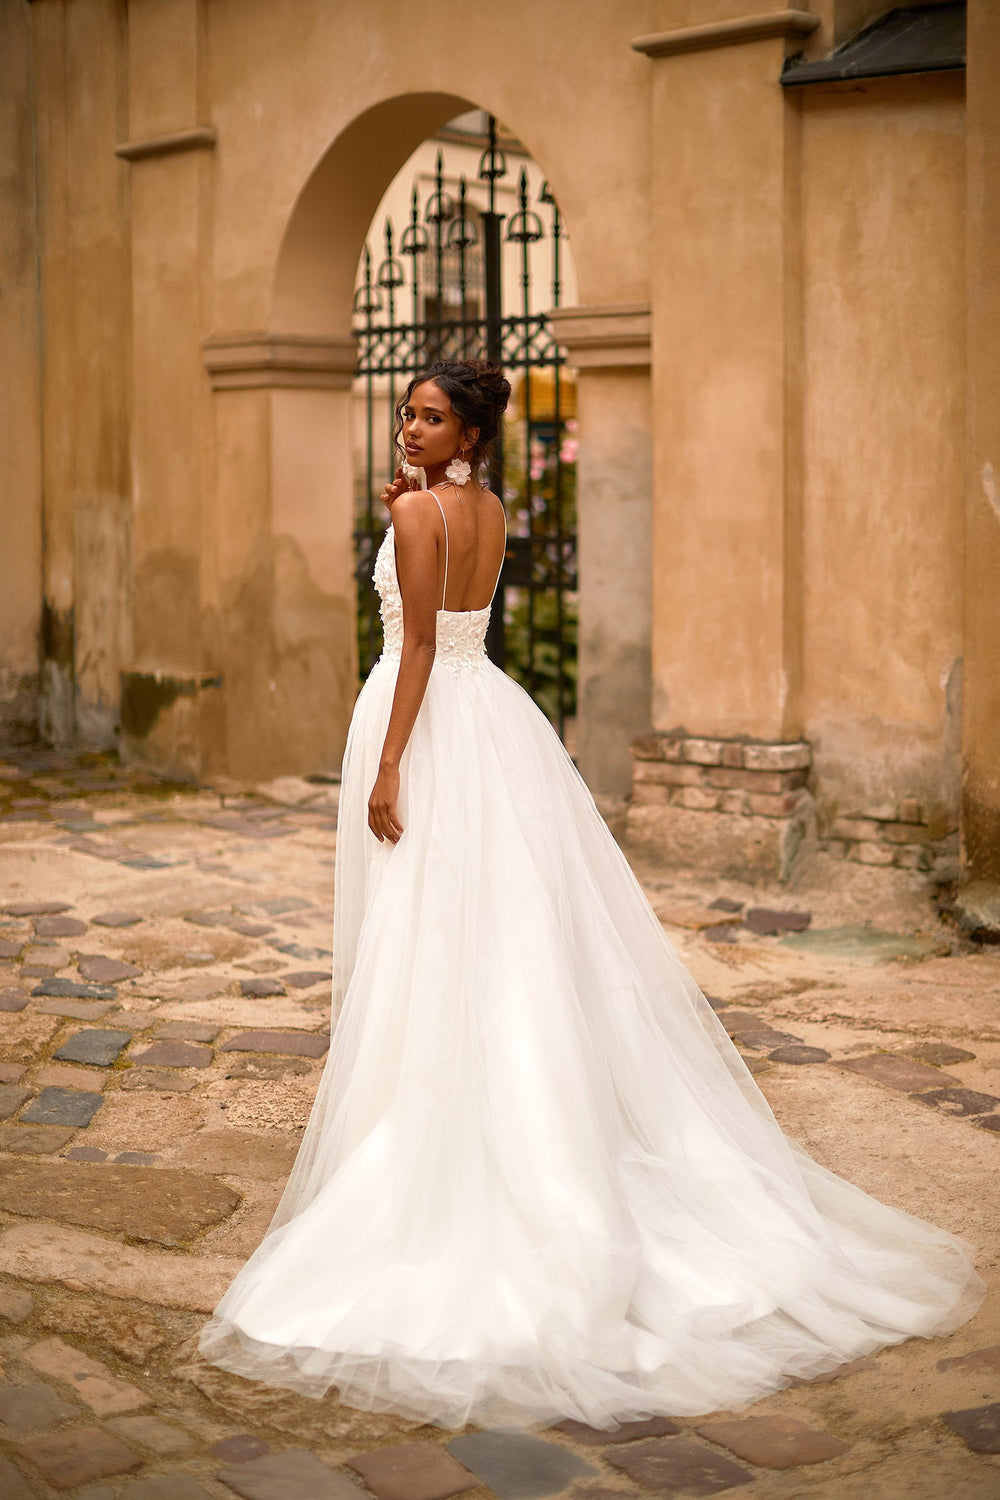 A&N Safa - White Floral Embellished Boho Bridal Gown with Plunge Neck